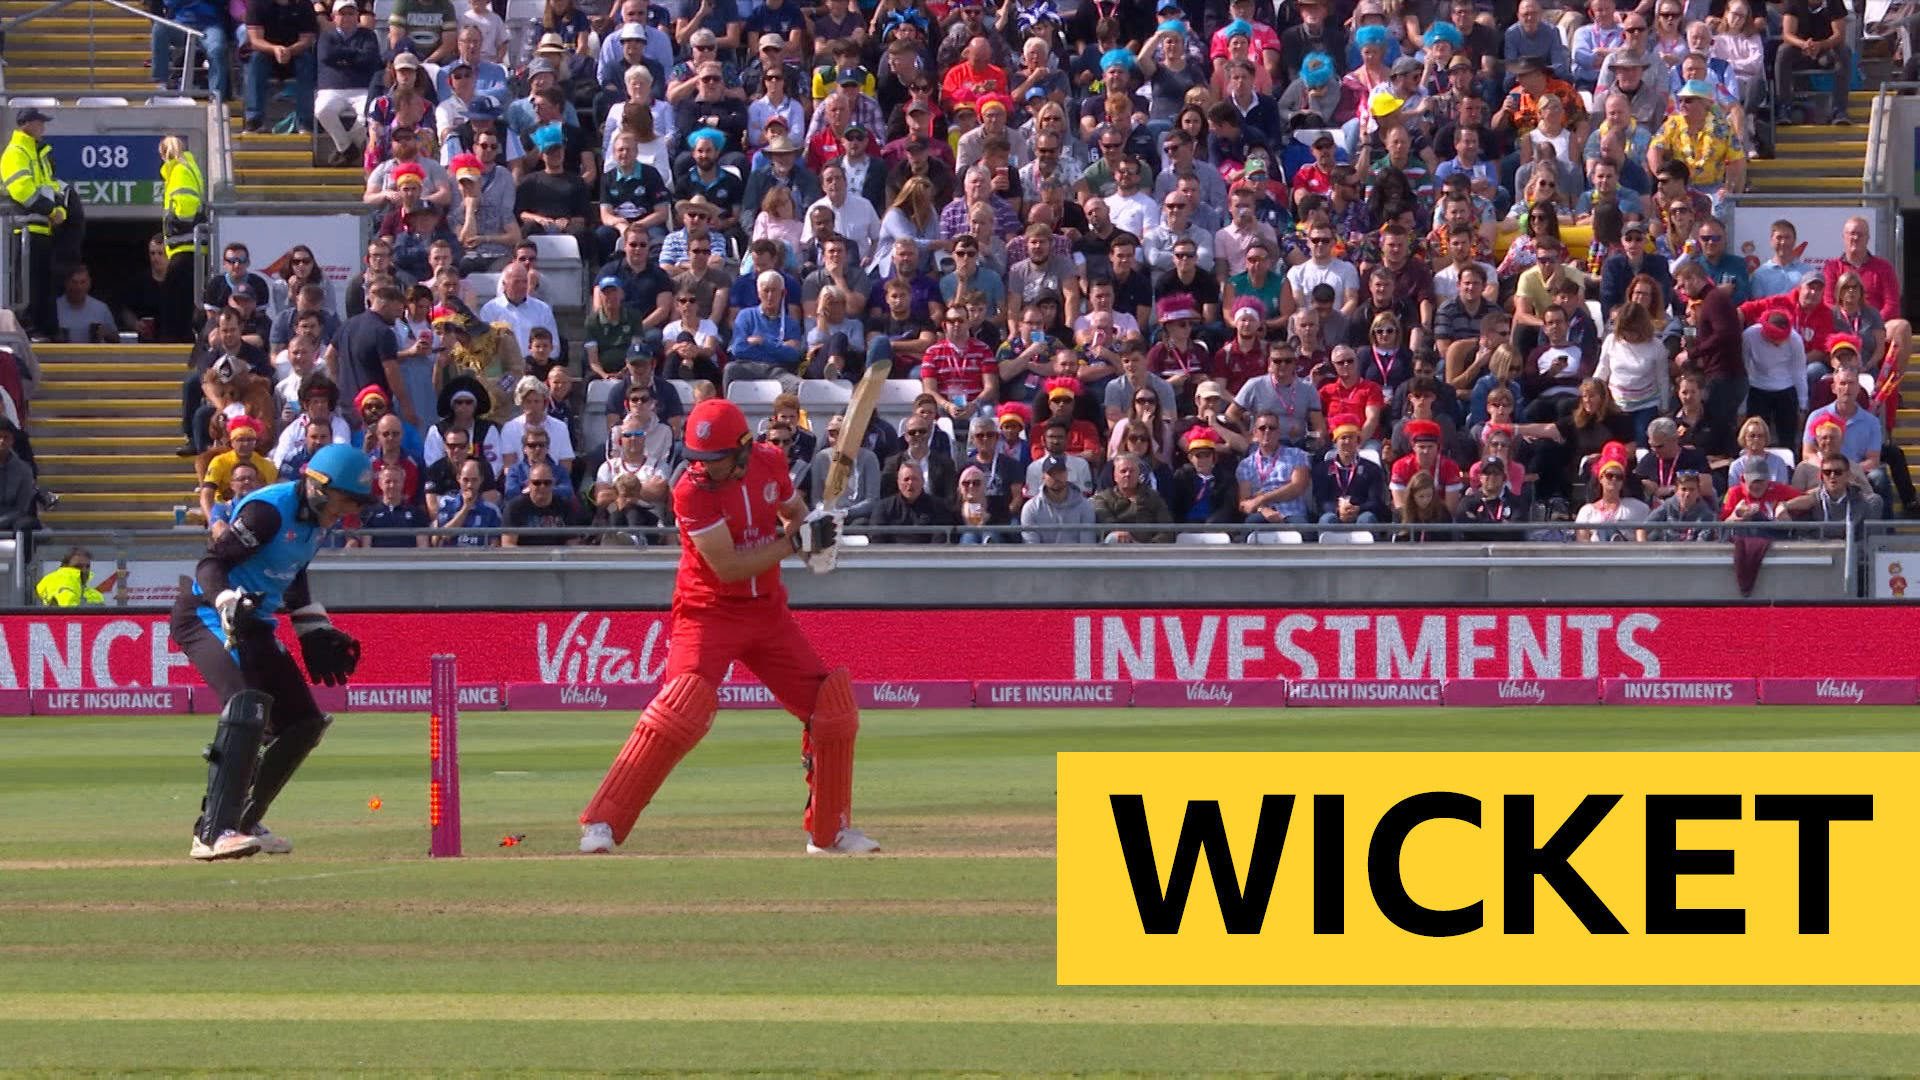 T20 Blast finals day: Jos Buttler bowled by Moeen Ali